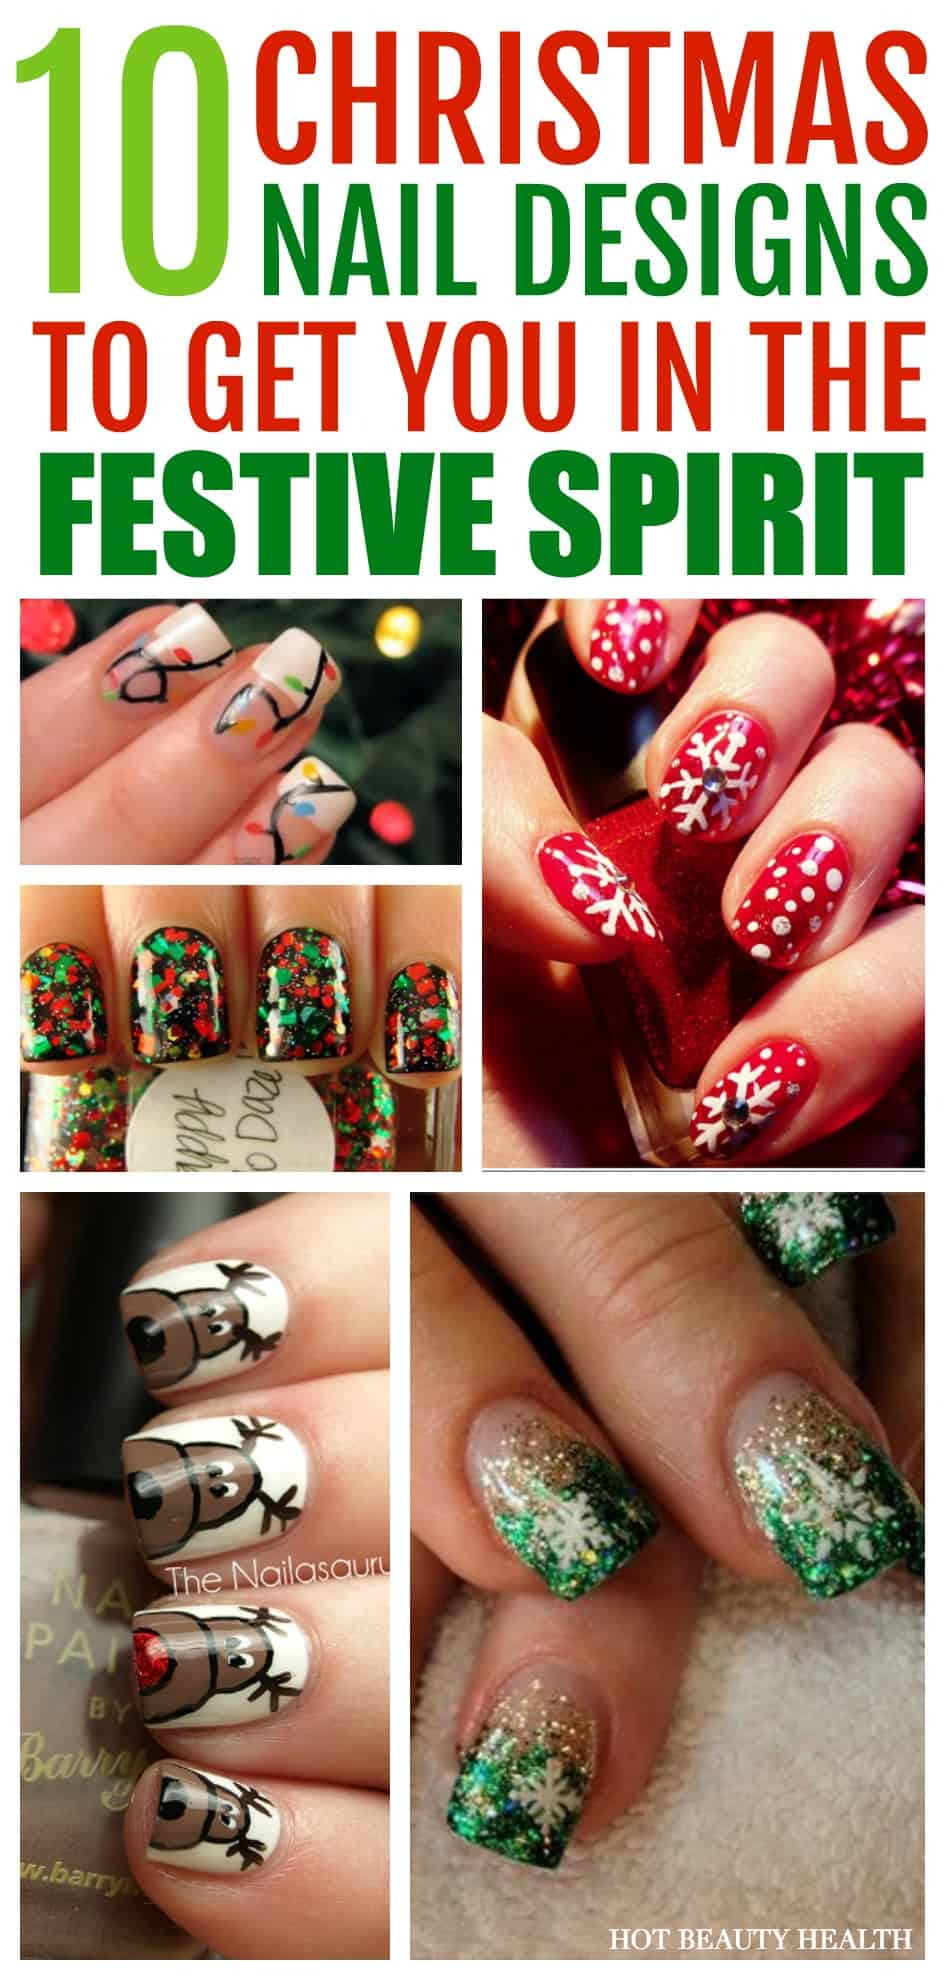 Here's a curated list of 10 holiday nail art design tutorials! They're festive and super fun to do this Christmas.